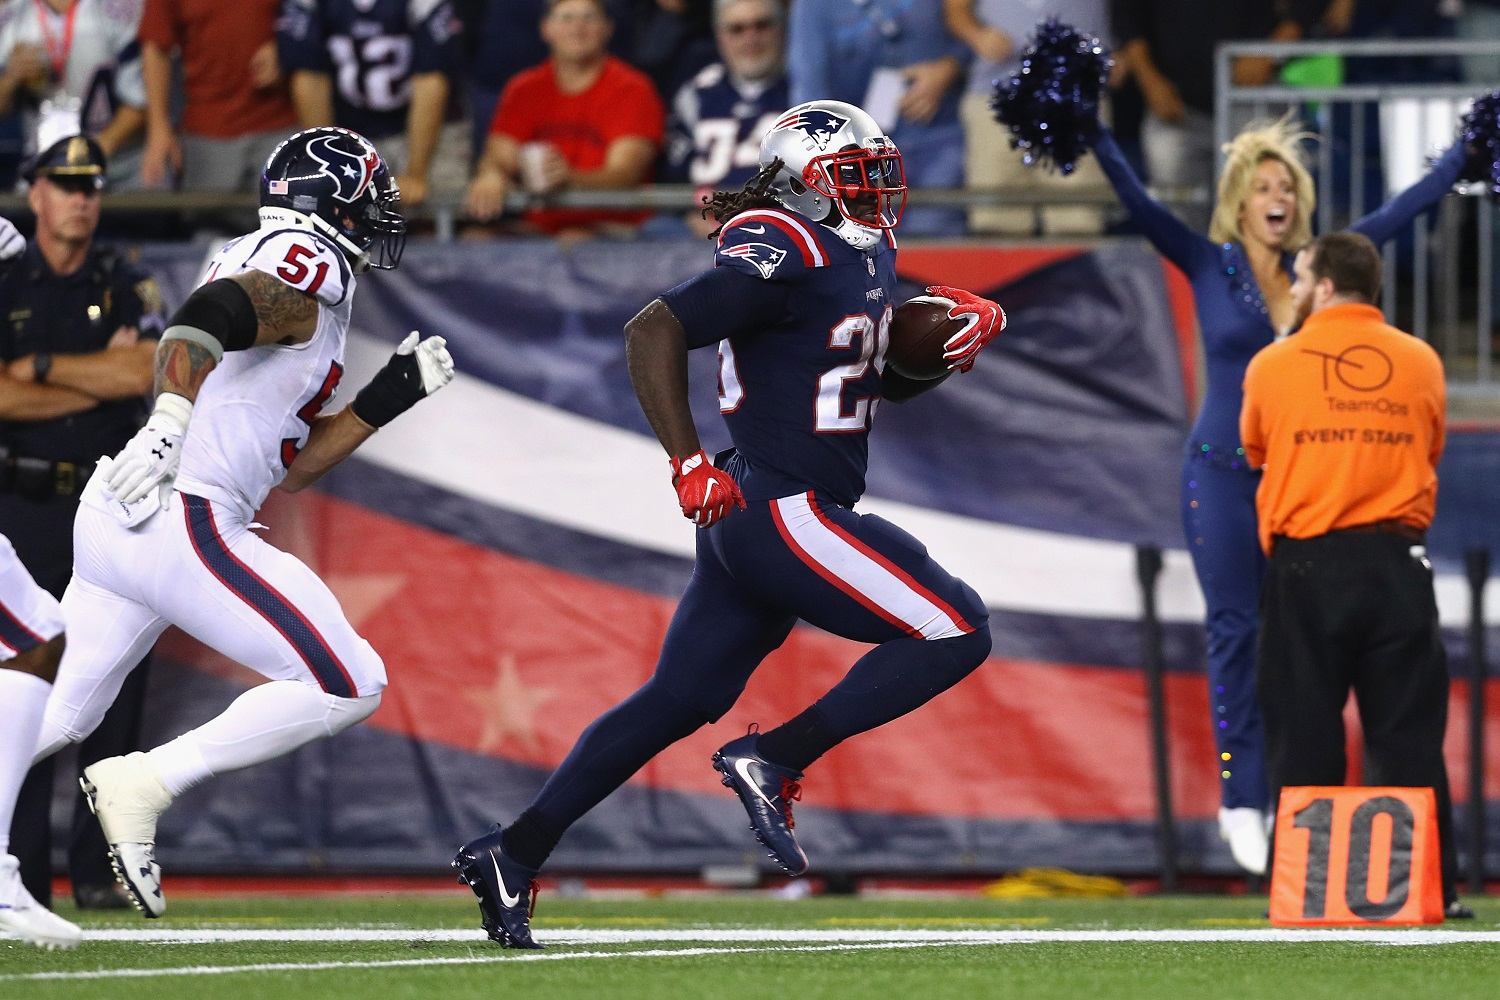 FOXBORO, MA - SEPTEMBER 22:  LeGarrette Blount #29 of the New England Patriots rushes for a touchdown during the fourth quarter against the Houston Texans at Gillette Stadium on September 22, 2016 in Foxboro, Massachusetts.  (Photo by Maddie Meyer/Getty Images)